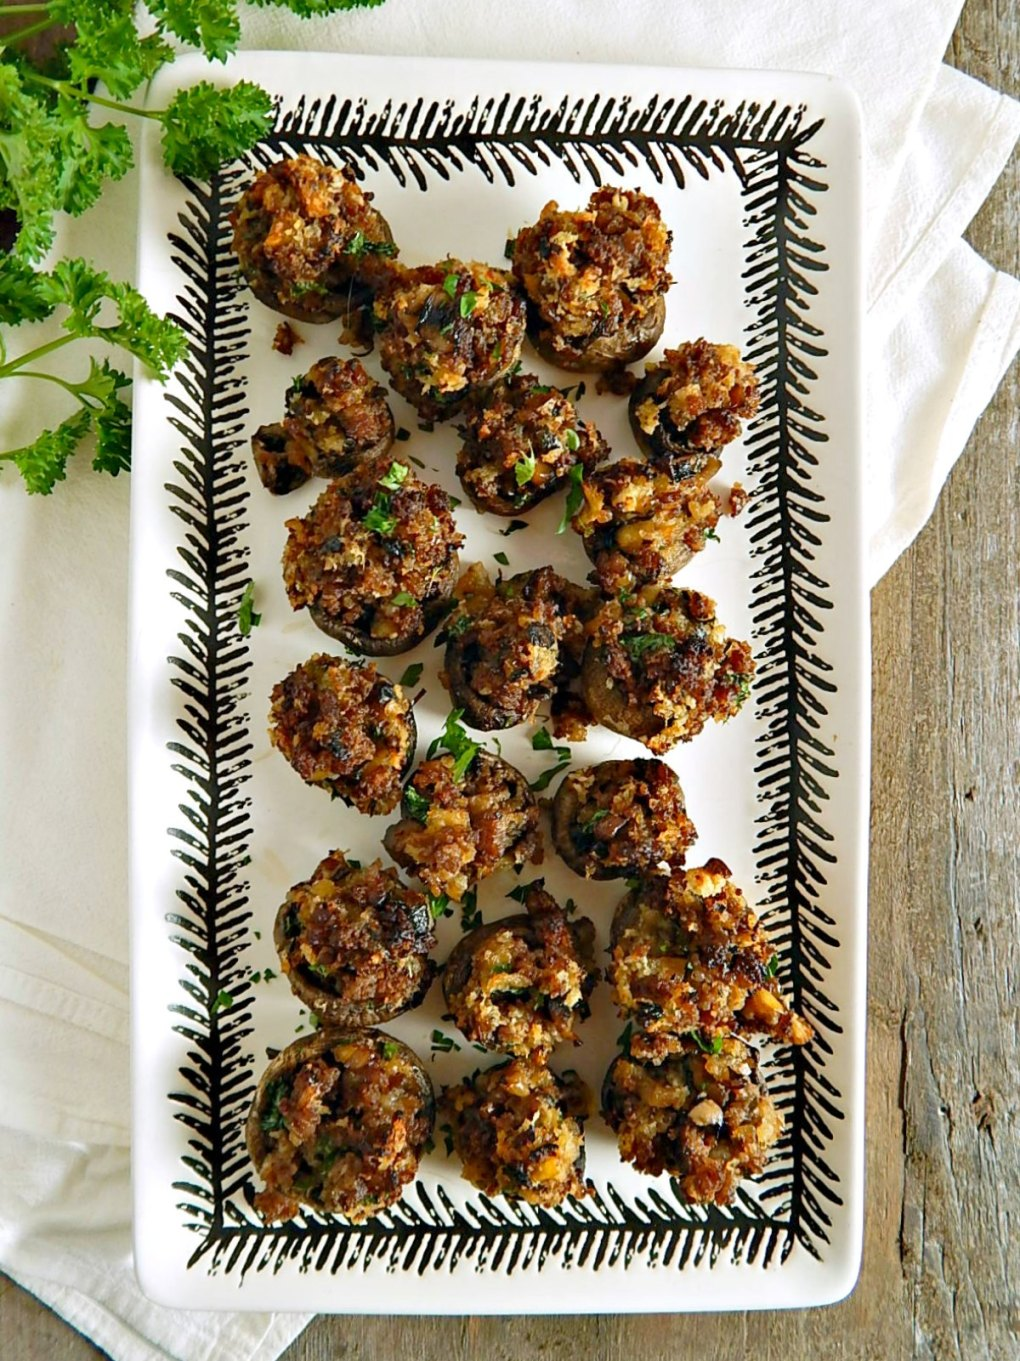 Cider & Sausage Stuffed Mushrooms